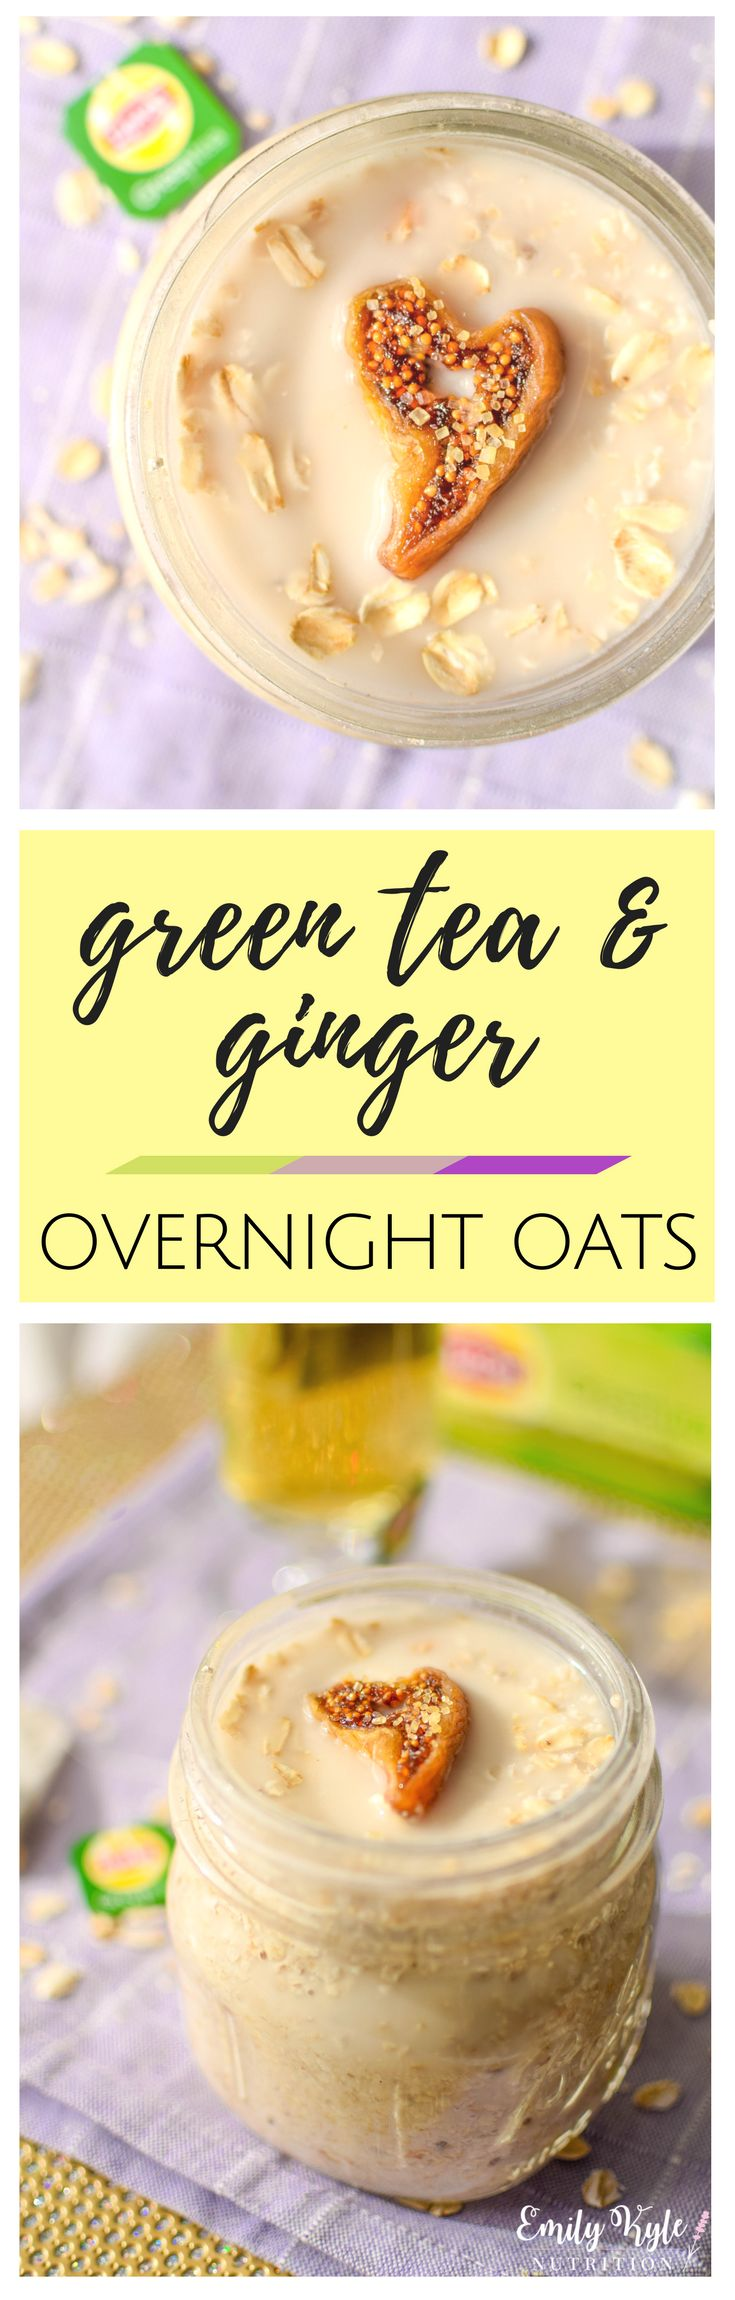 This Lipton® Green Tea & Ginger Overnight Oats recipe takes just 5 minutes to prepare so that you can have a nutritious and delicious breakfast ready to run out the door with you on those busy mornings! #ad via @EmKyleNutrition